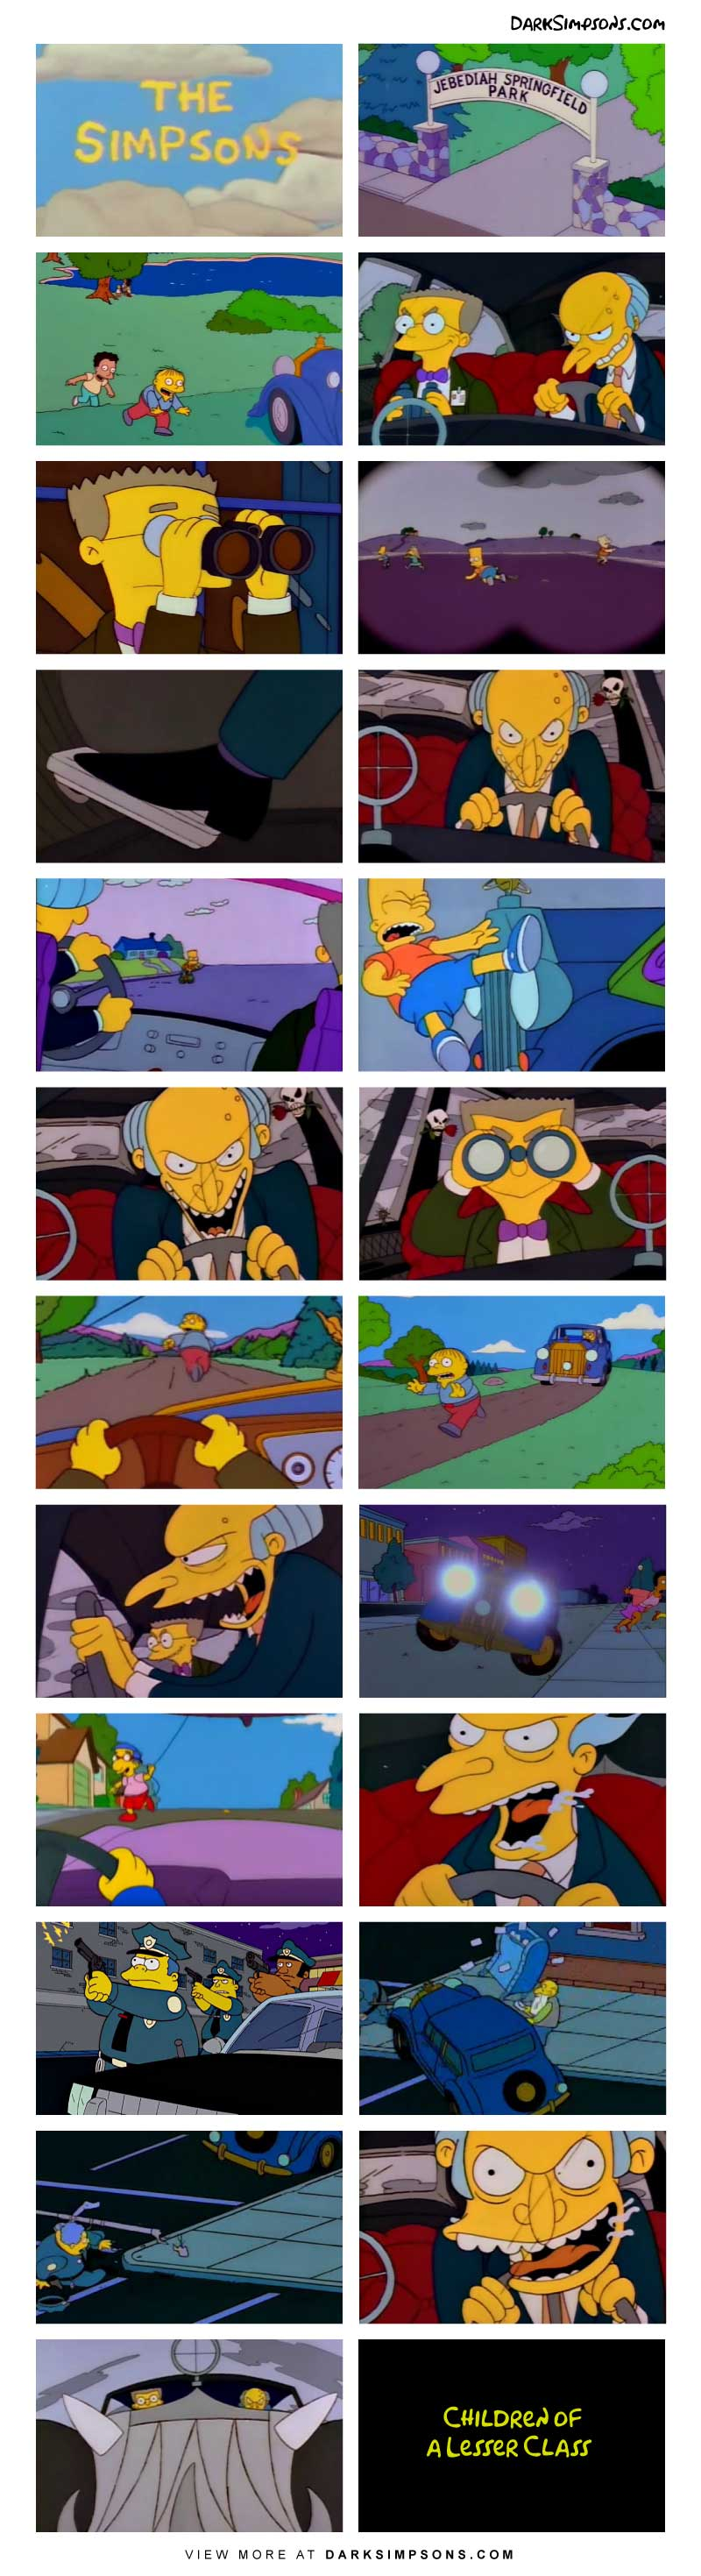 Mr. Burns and Smithers enjoy a lovely day driving around Jebediah Springfield Park.